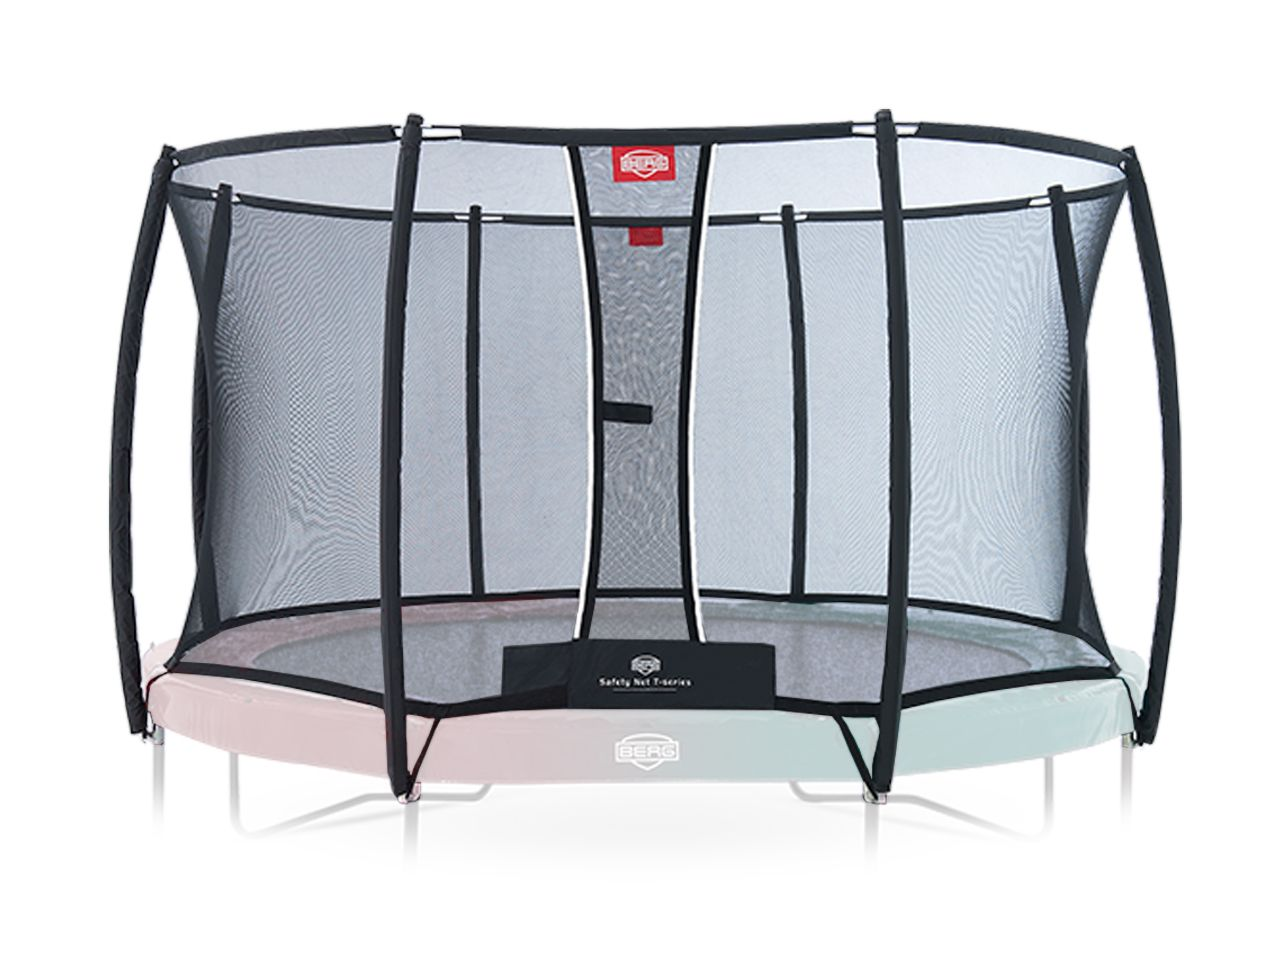 BERG Safety Net T-series 330 (11 ft)